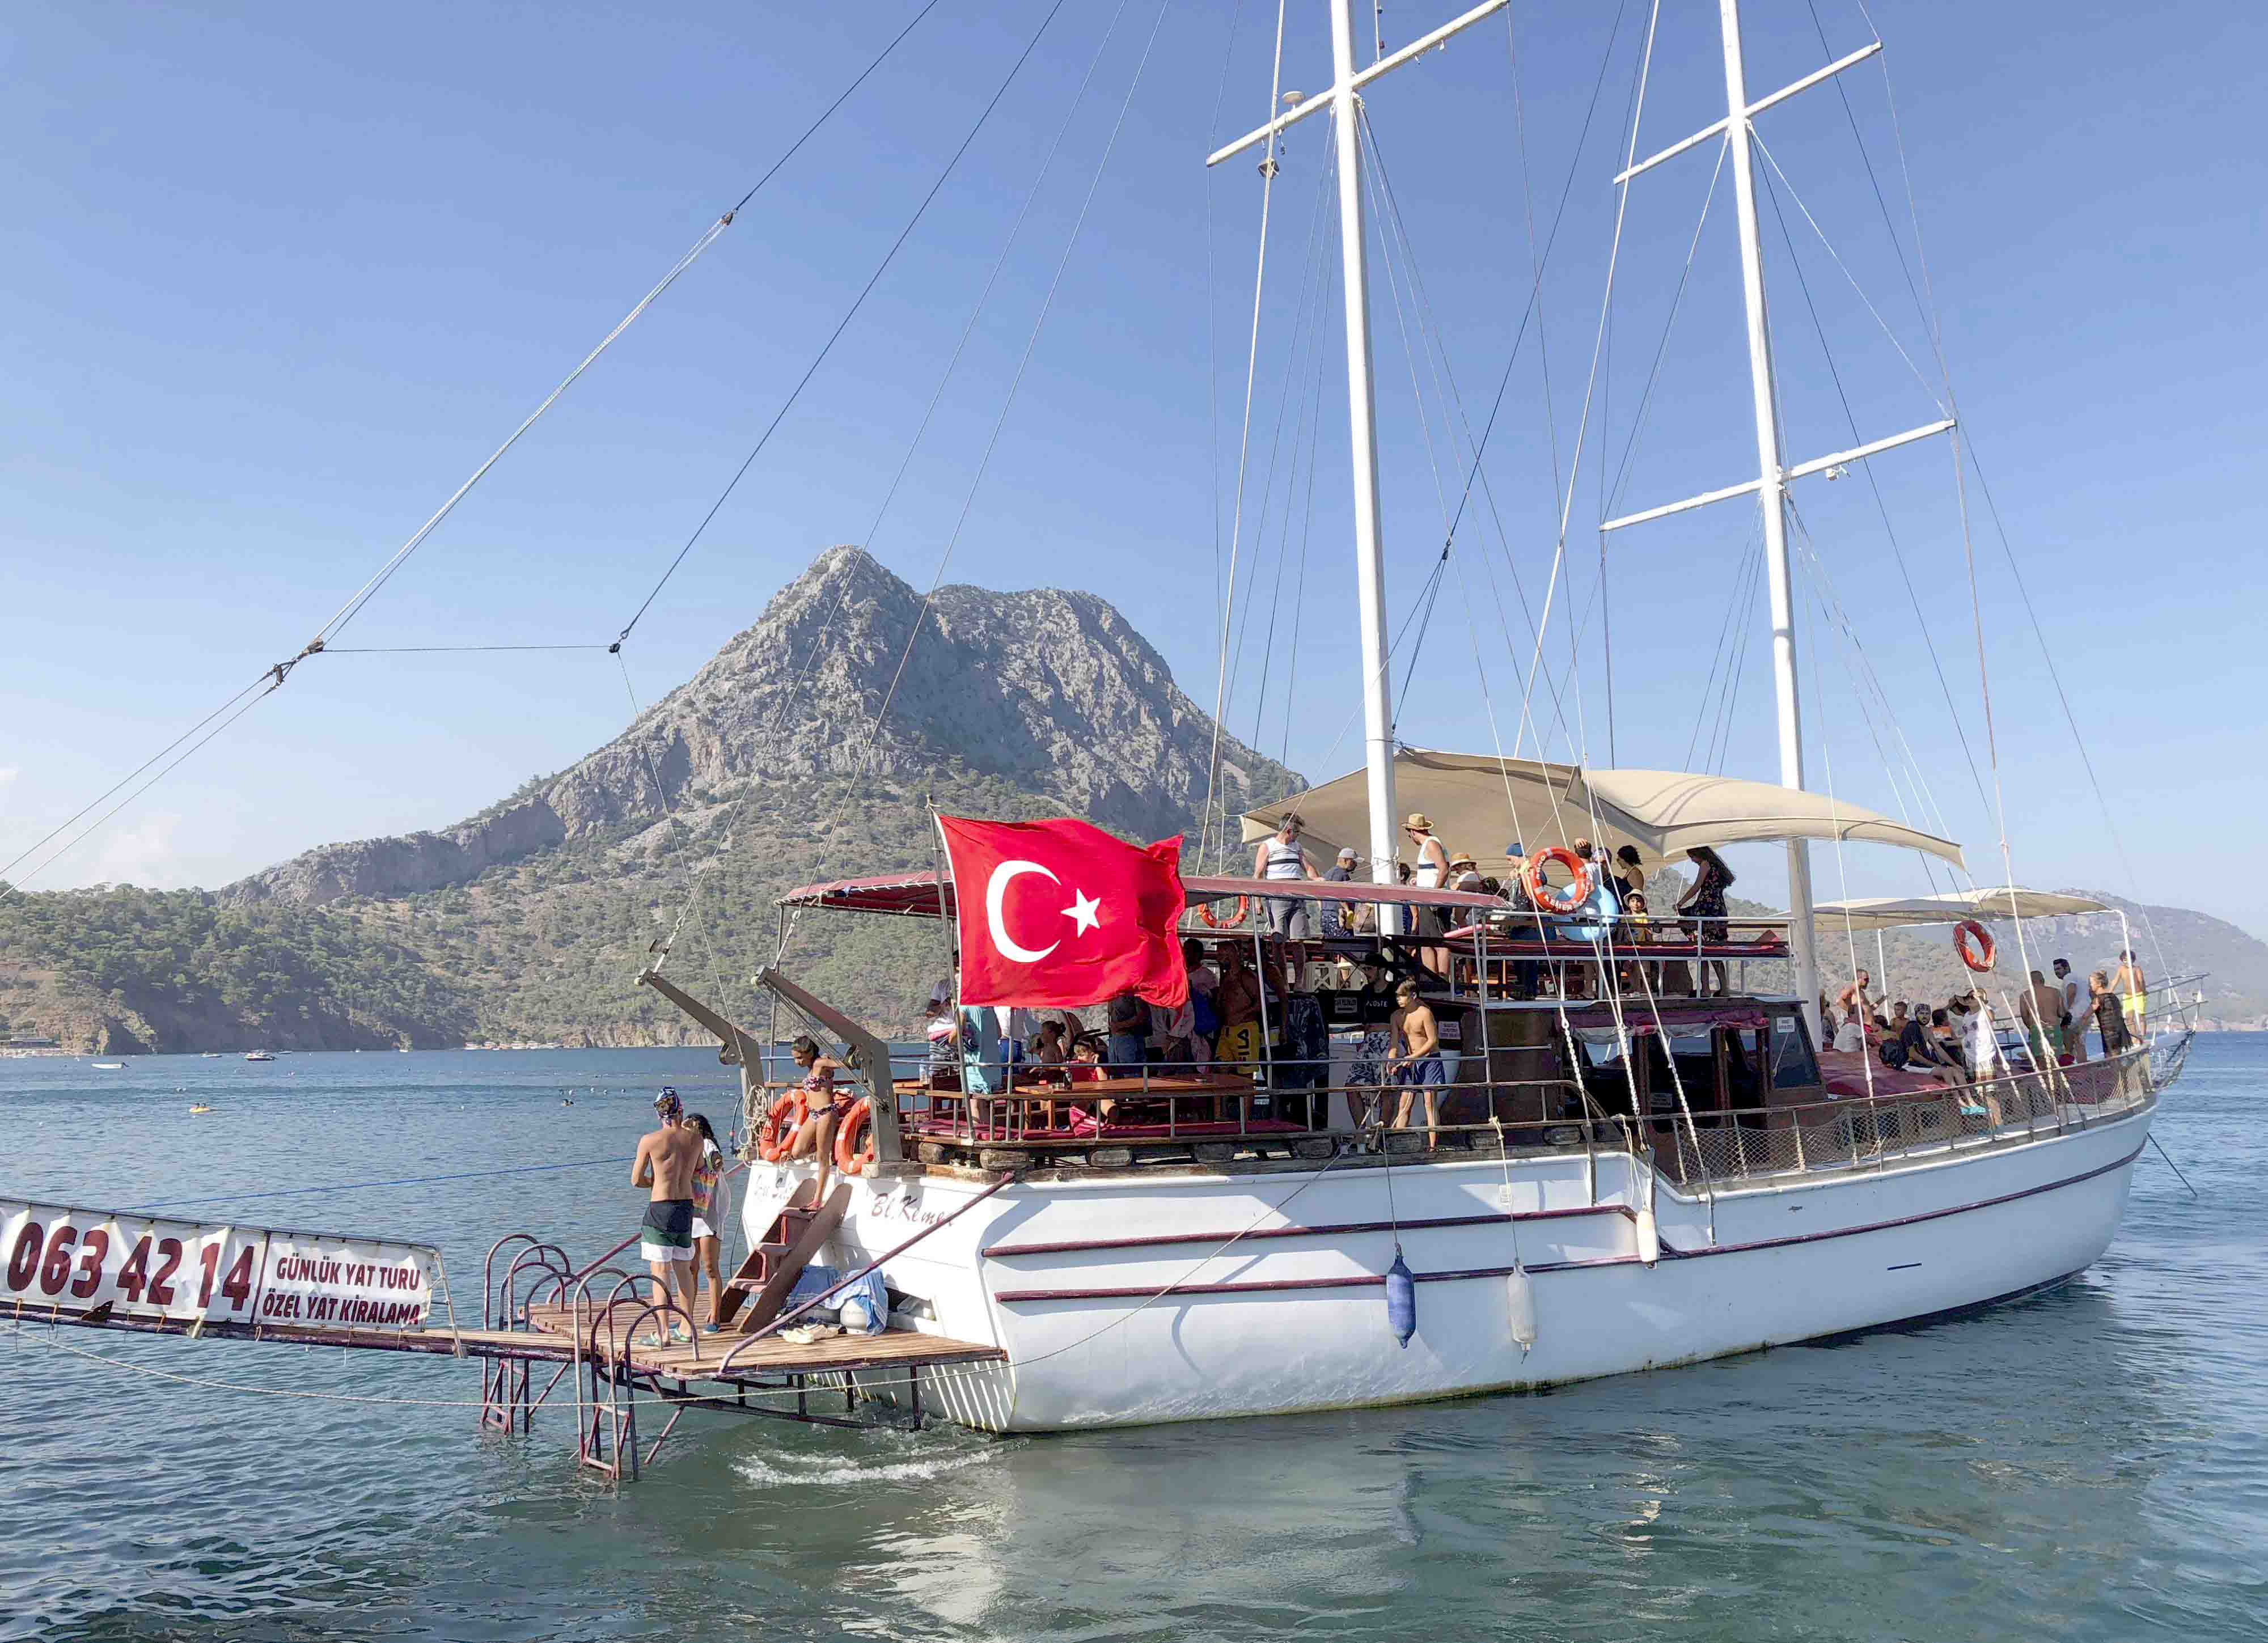 A tourist boat sails in the Mediterranean in Adrasan, 100kms west of Antalya. (AP)